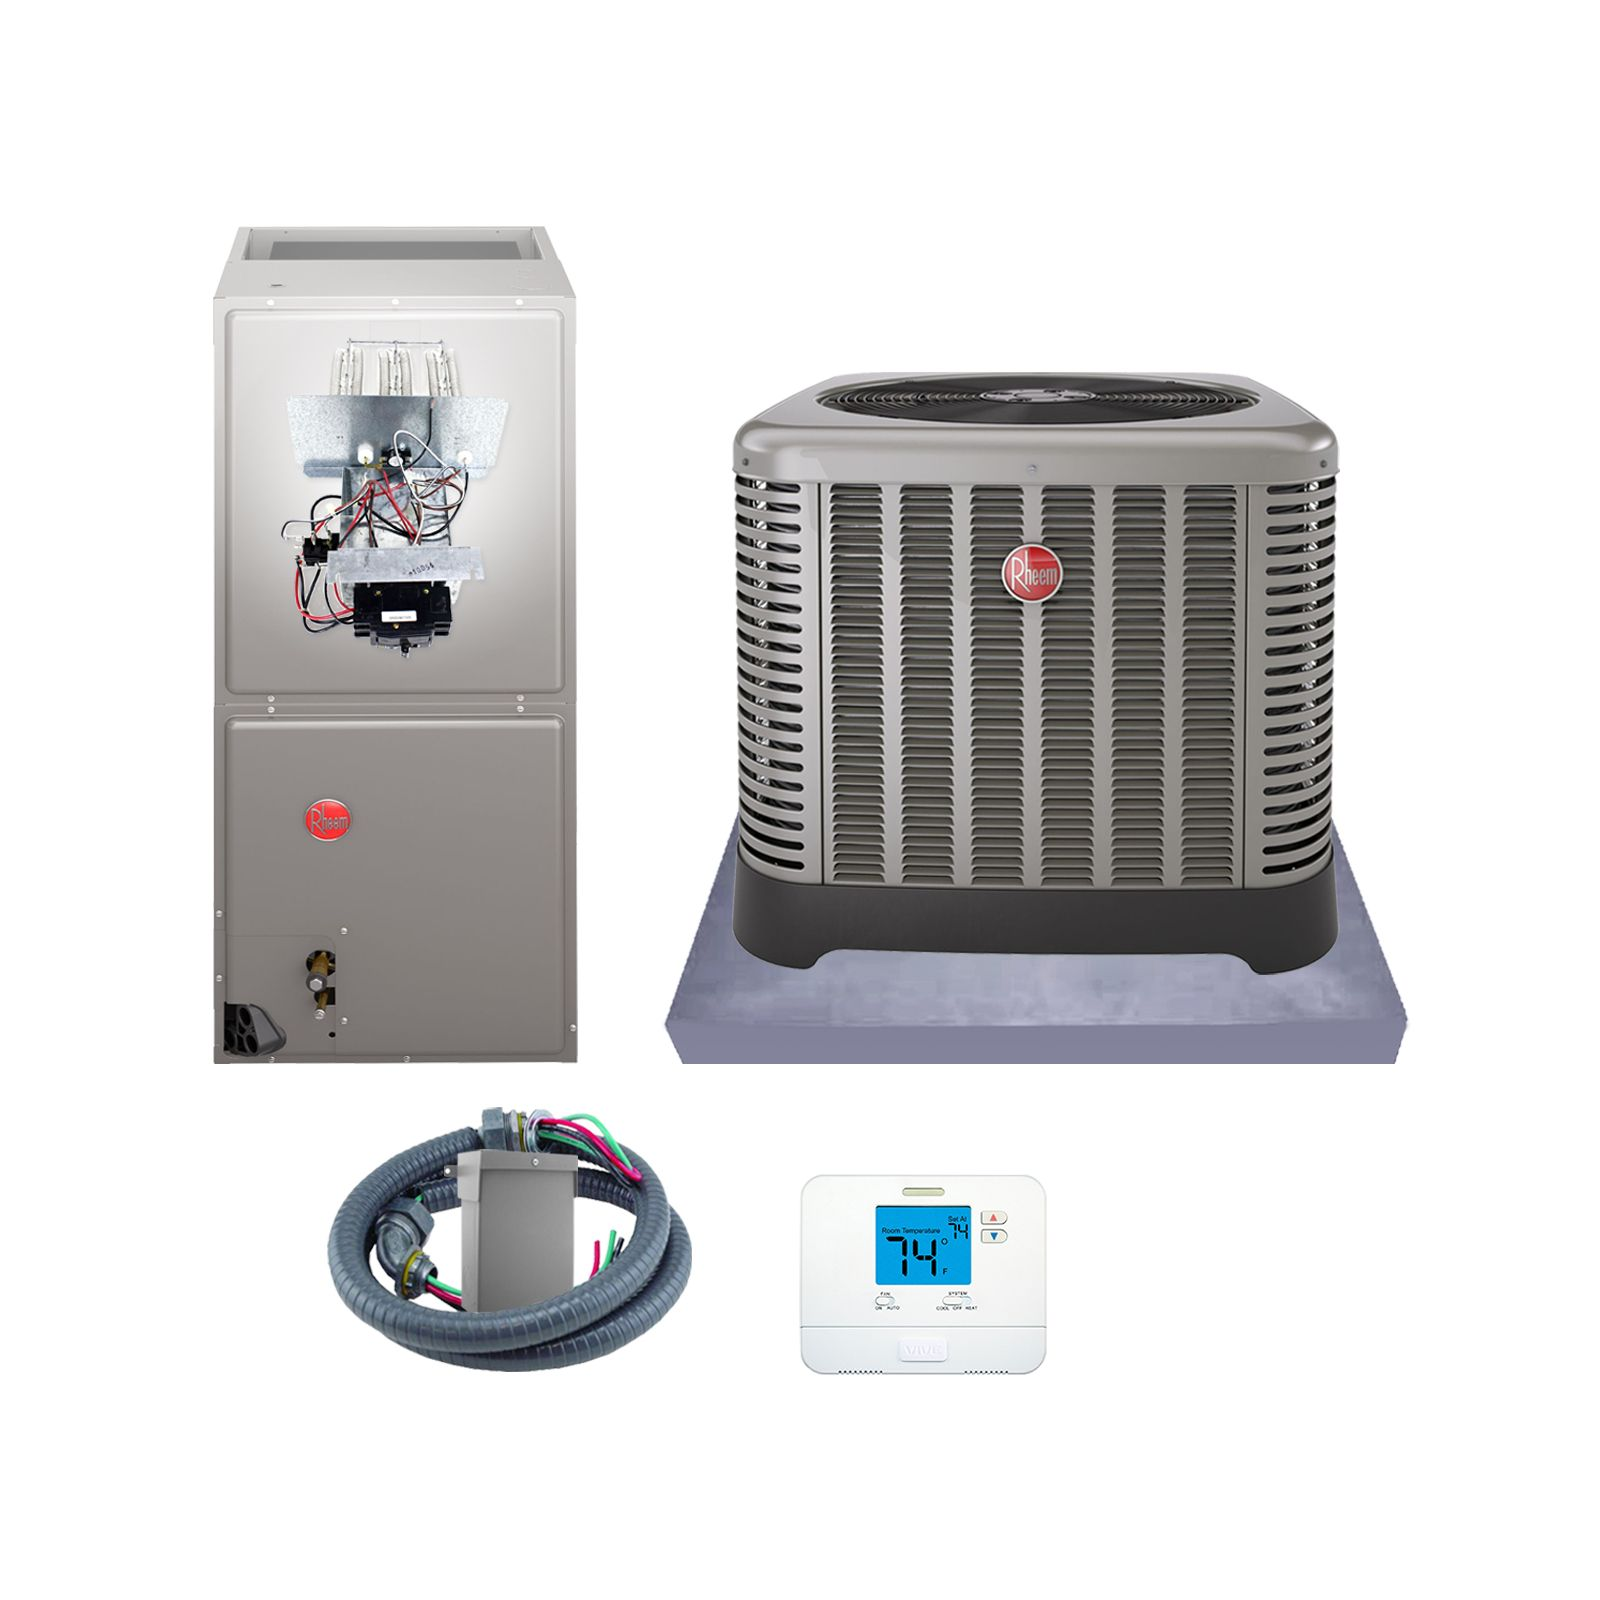 Rheem (AHRI 7941343) 2 1/2 Ton, 16 SEER/13 EER Classic Series, Air Conditioner Split System and Install Kit